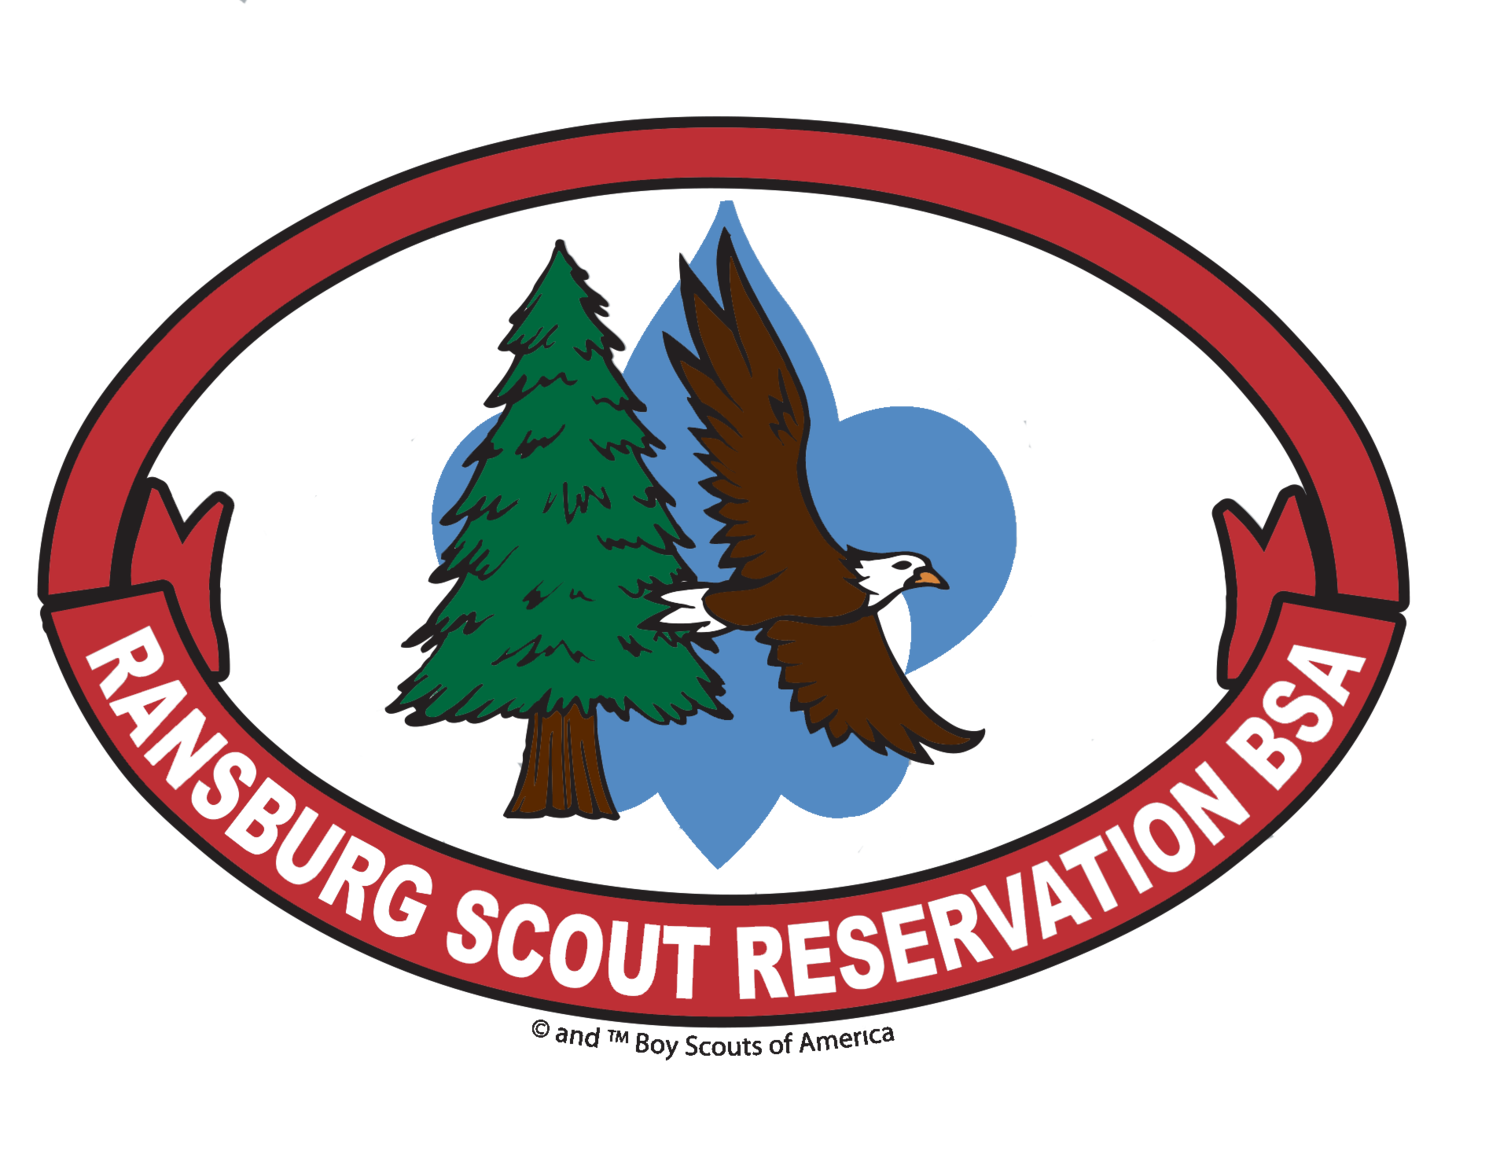 Ransburg Scout Reservation